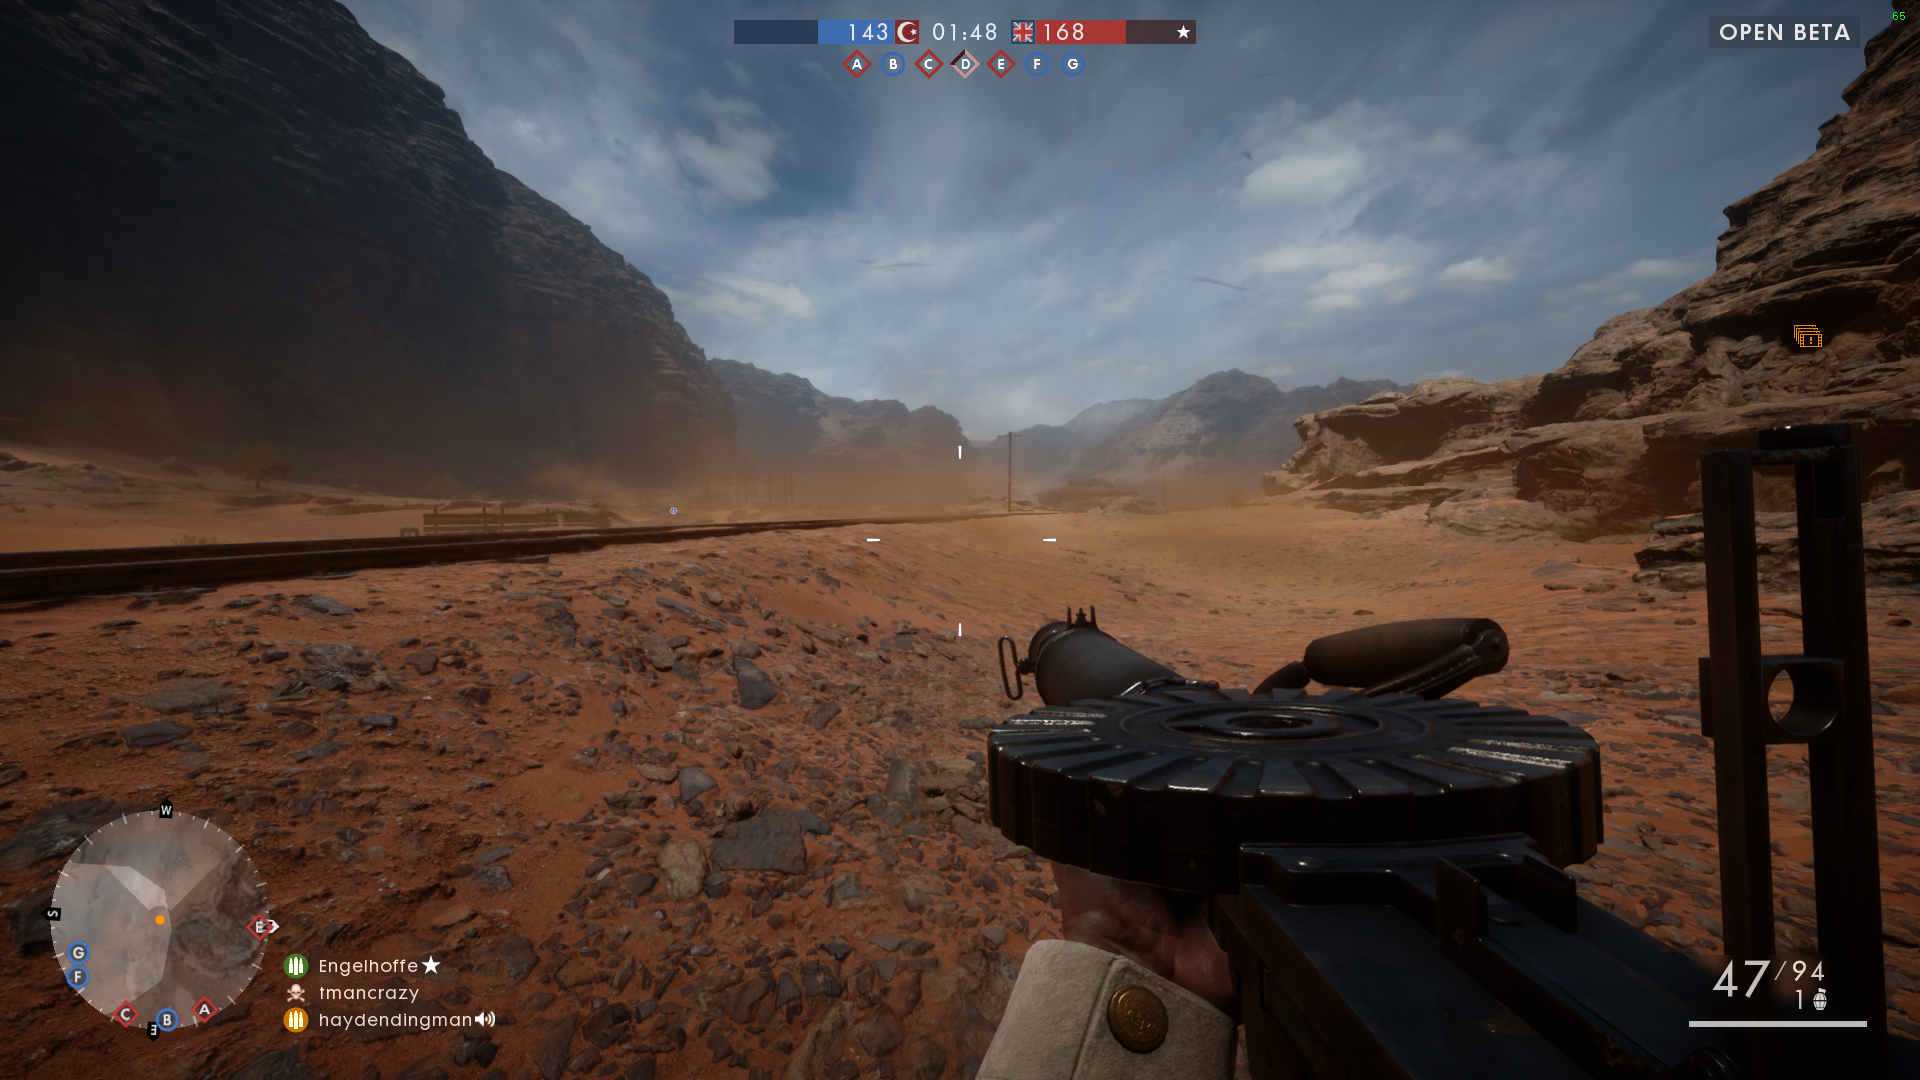 battlefield-1-open-beta-8_30_2016-4_43_31-pm-100680078-orig